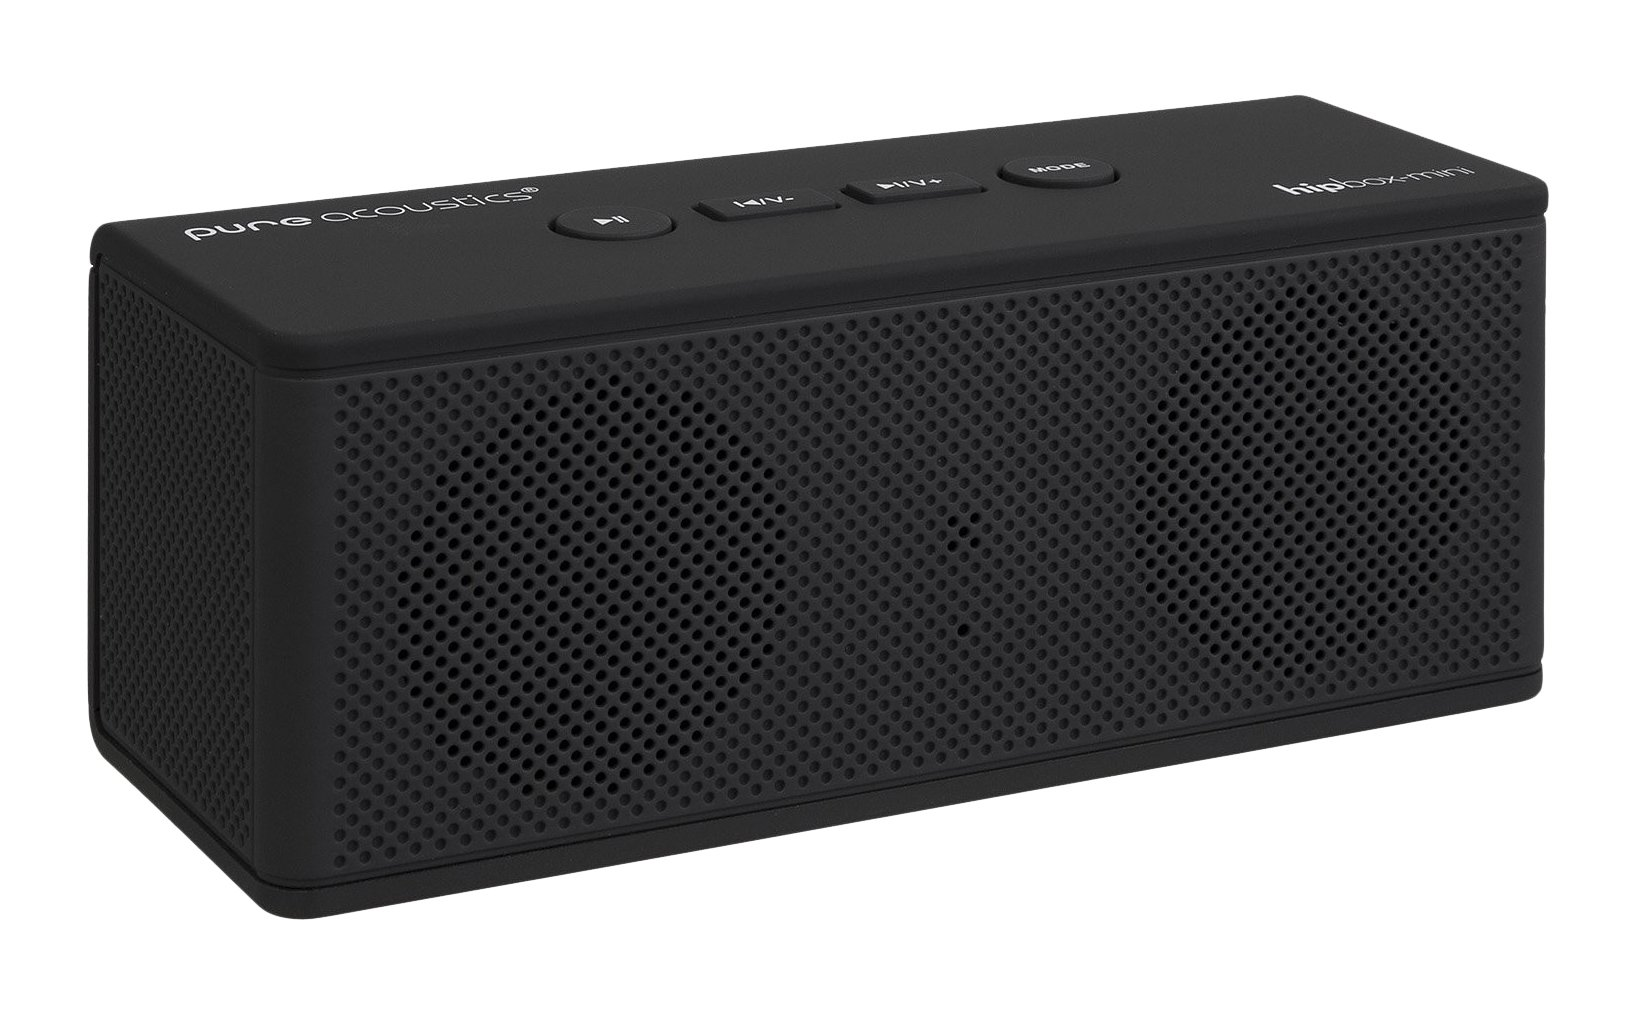 Pure Acoustics PU-HIP853 Portable 3-Channel Home Theater Speaker System, Black by Pure Acoustics